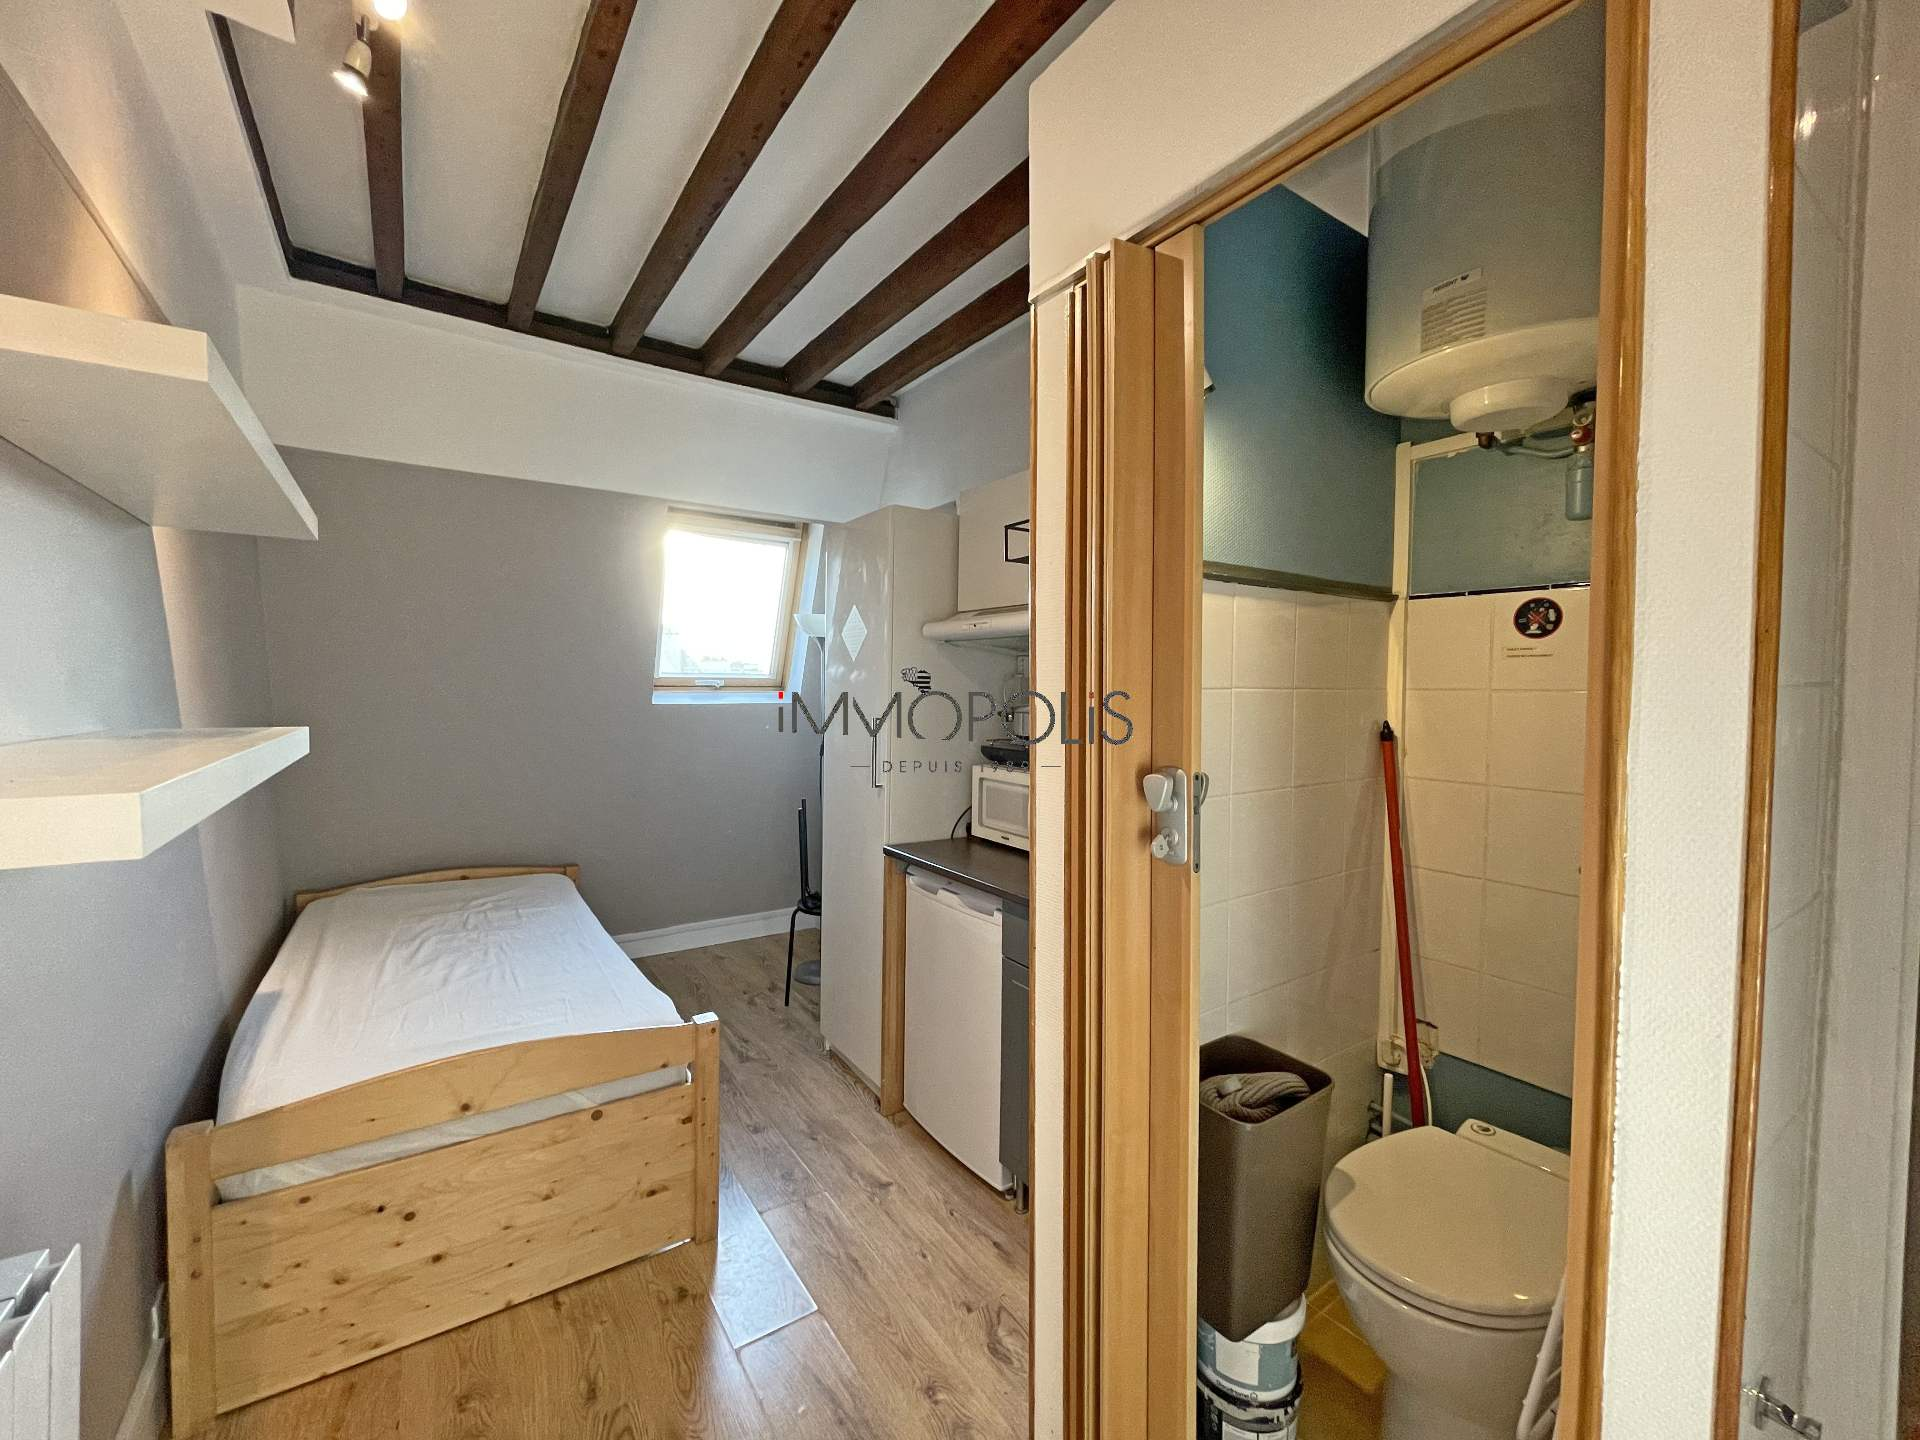 District Europe (rue Clapeyron in the 8th arrondissement), Legally launched studio of 9.88 m² Law Carrez located in a beautiful well maintained building 6